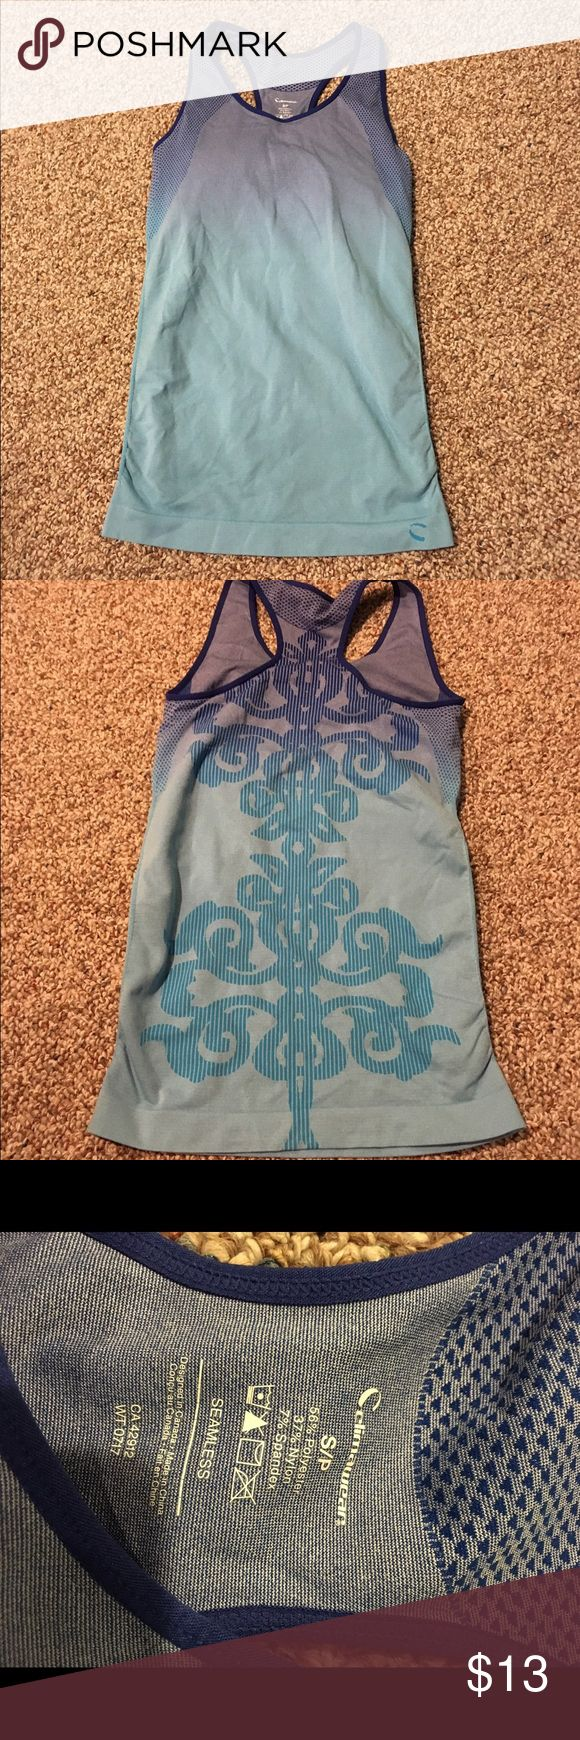 Climawear work out top This is a like new climawear women's work out top. It is a size small and has a built in bra with padding with a super cute design on the back! Also selling on merc! climawear Tops Tank Tops